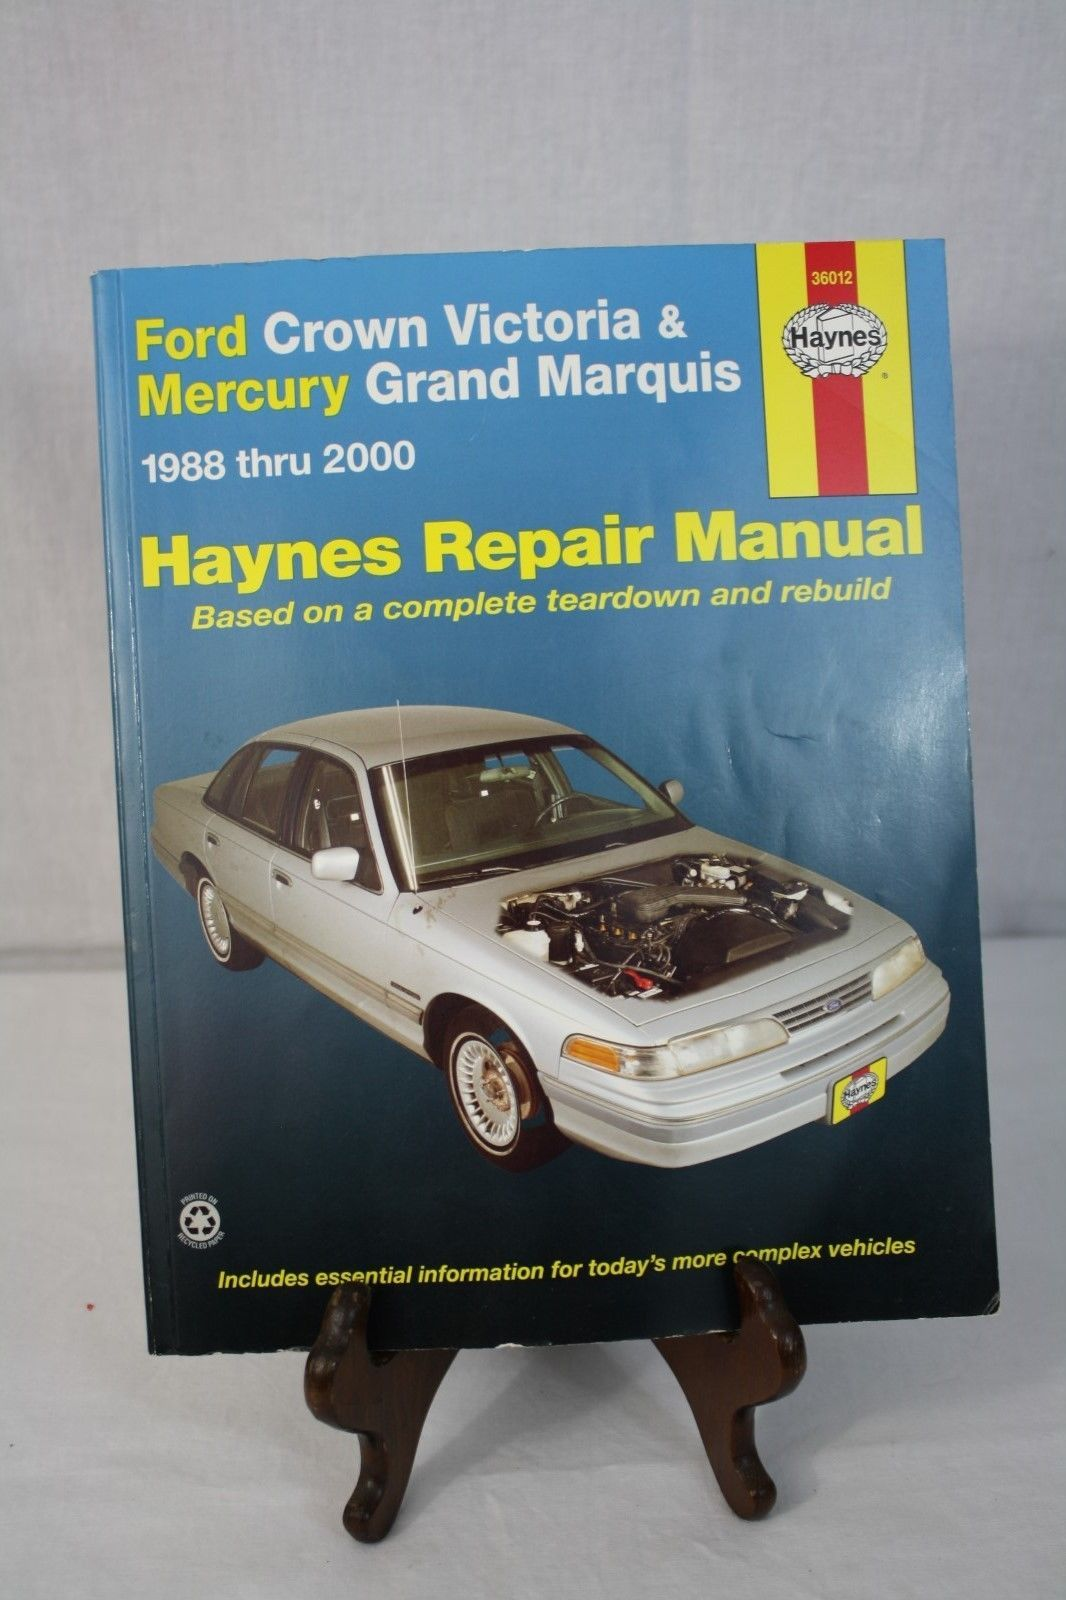 Haynes Repair Manual Ford Crown Victoria & Mercury Grand Marquis 1988-2000